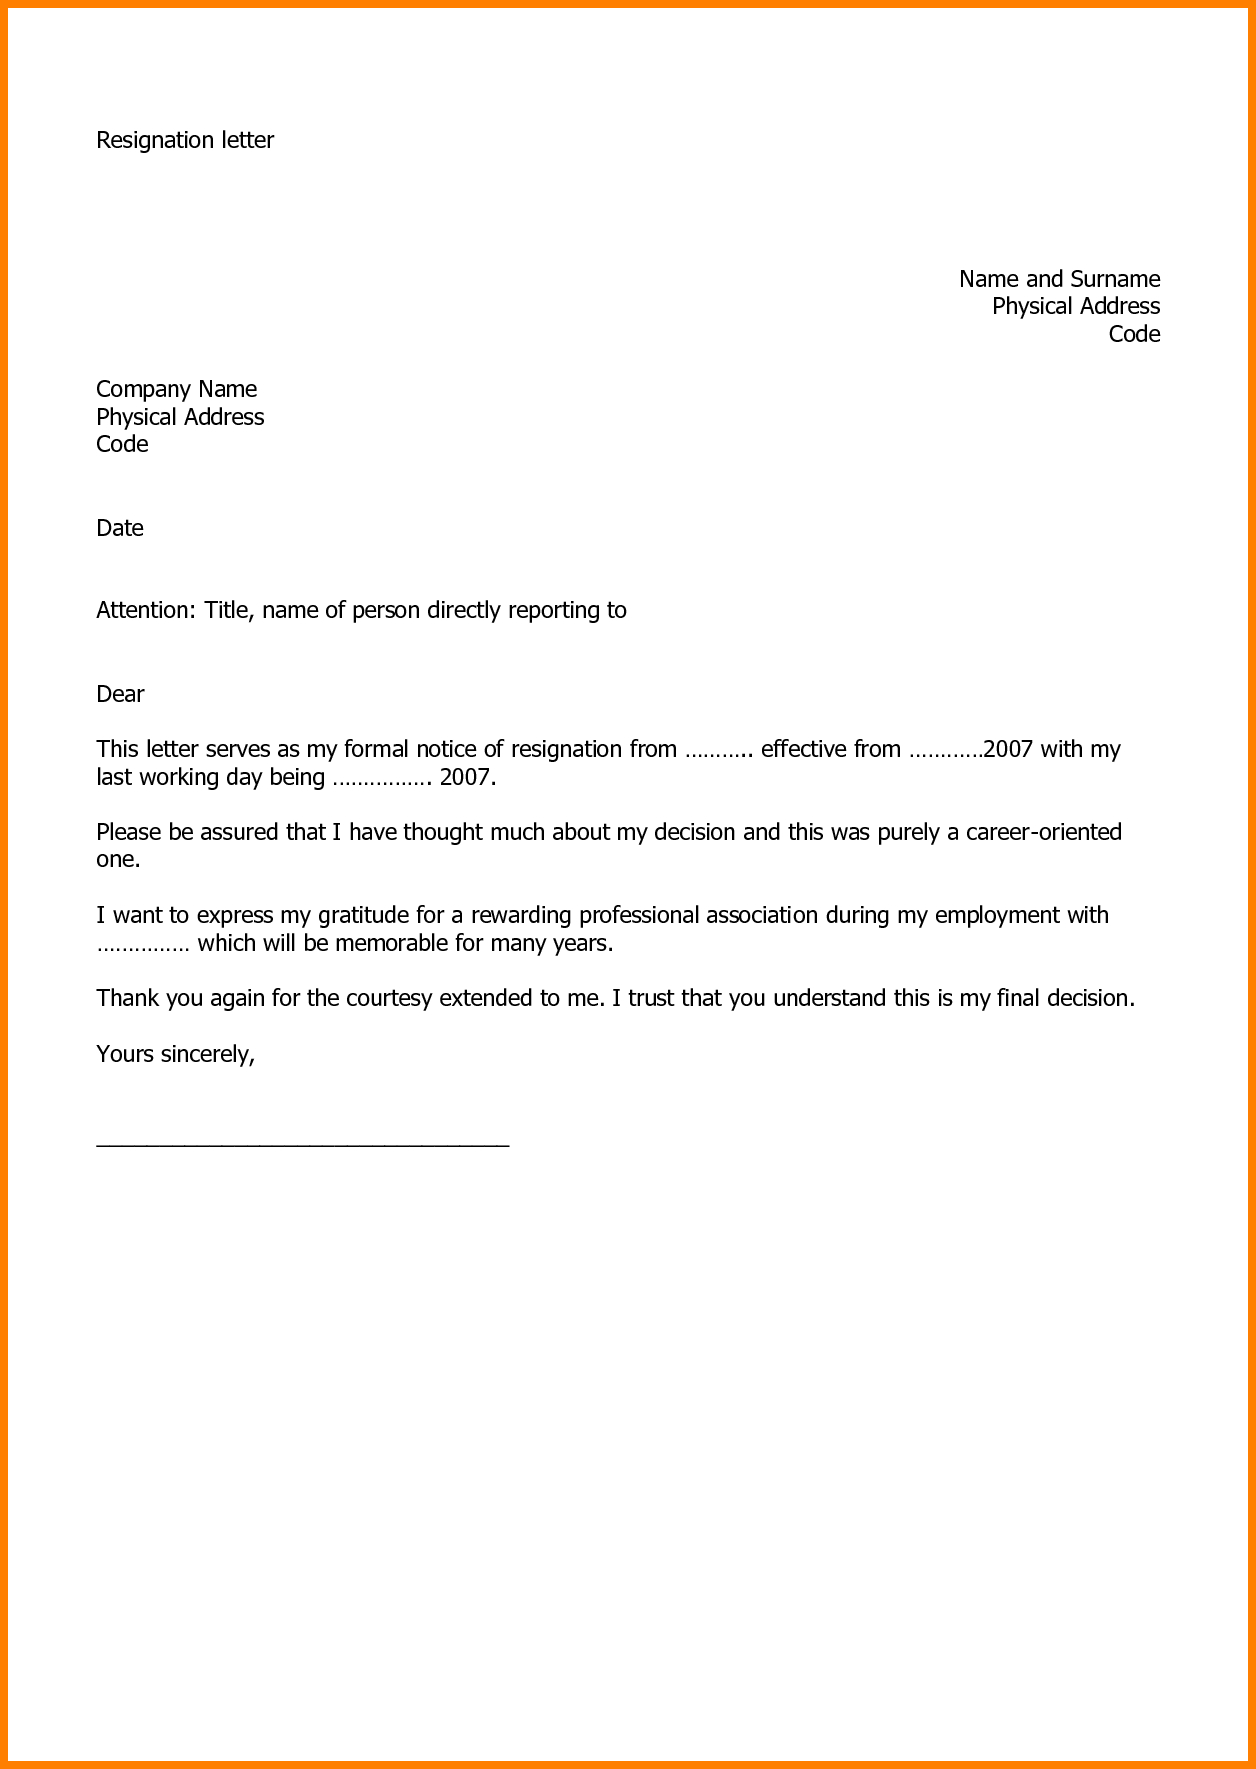 Letter Of Resignation Template Word 2007 - Letter format for Job Resignation Resignation Letter Example